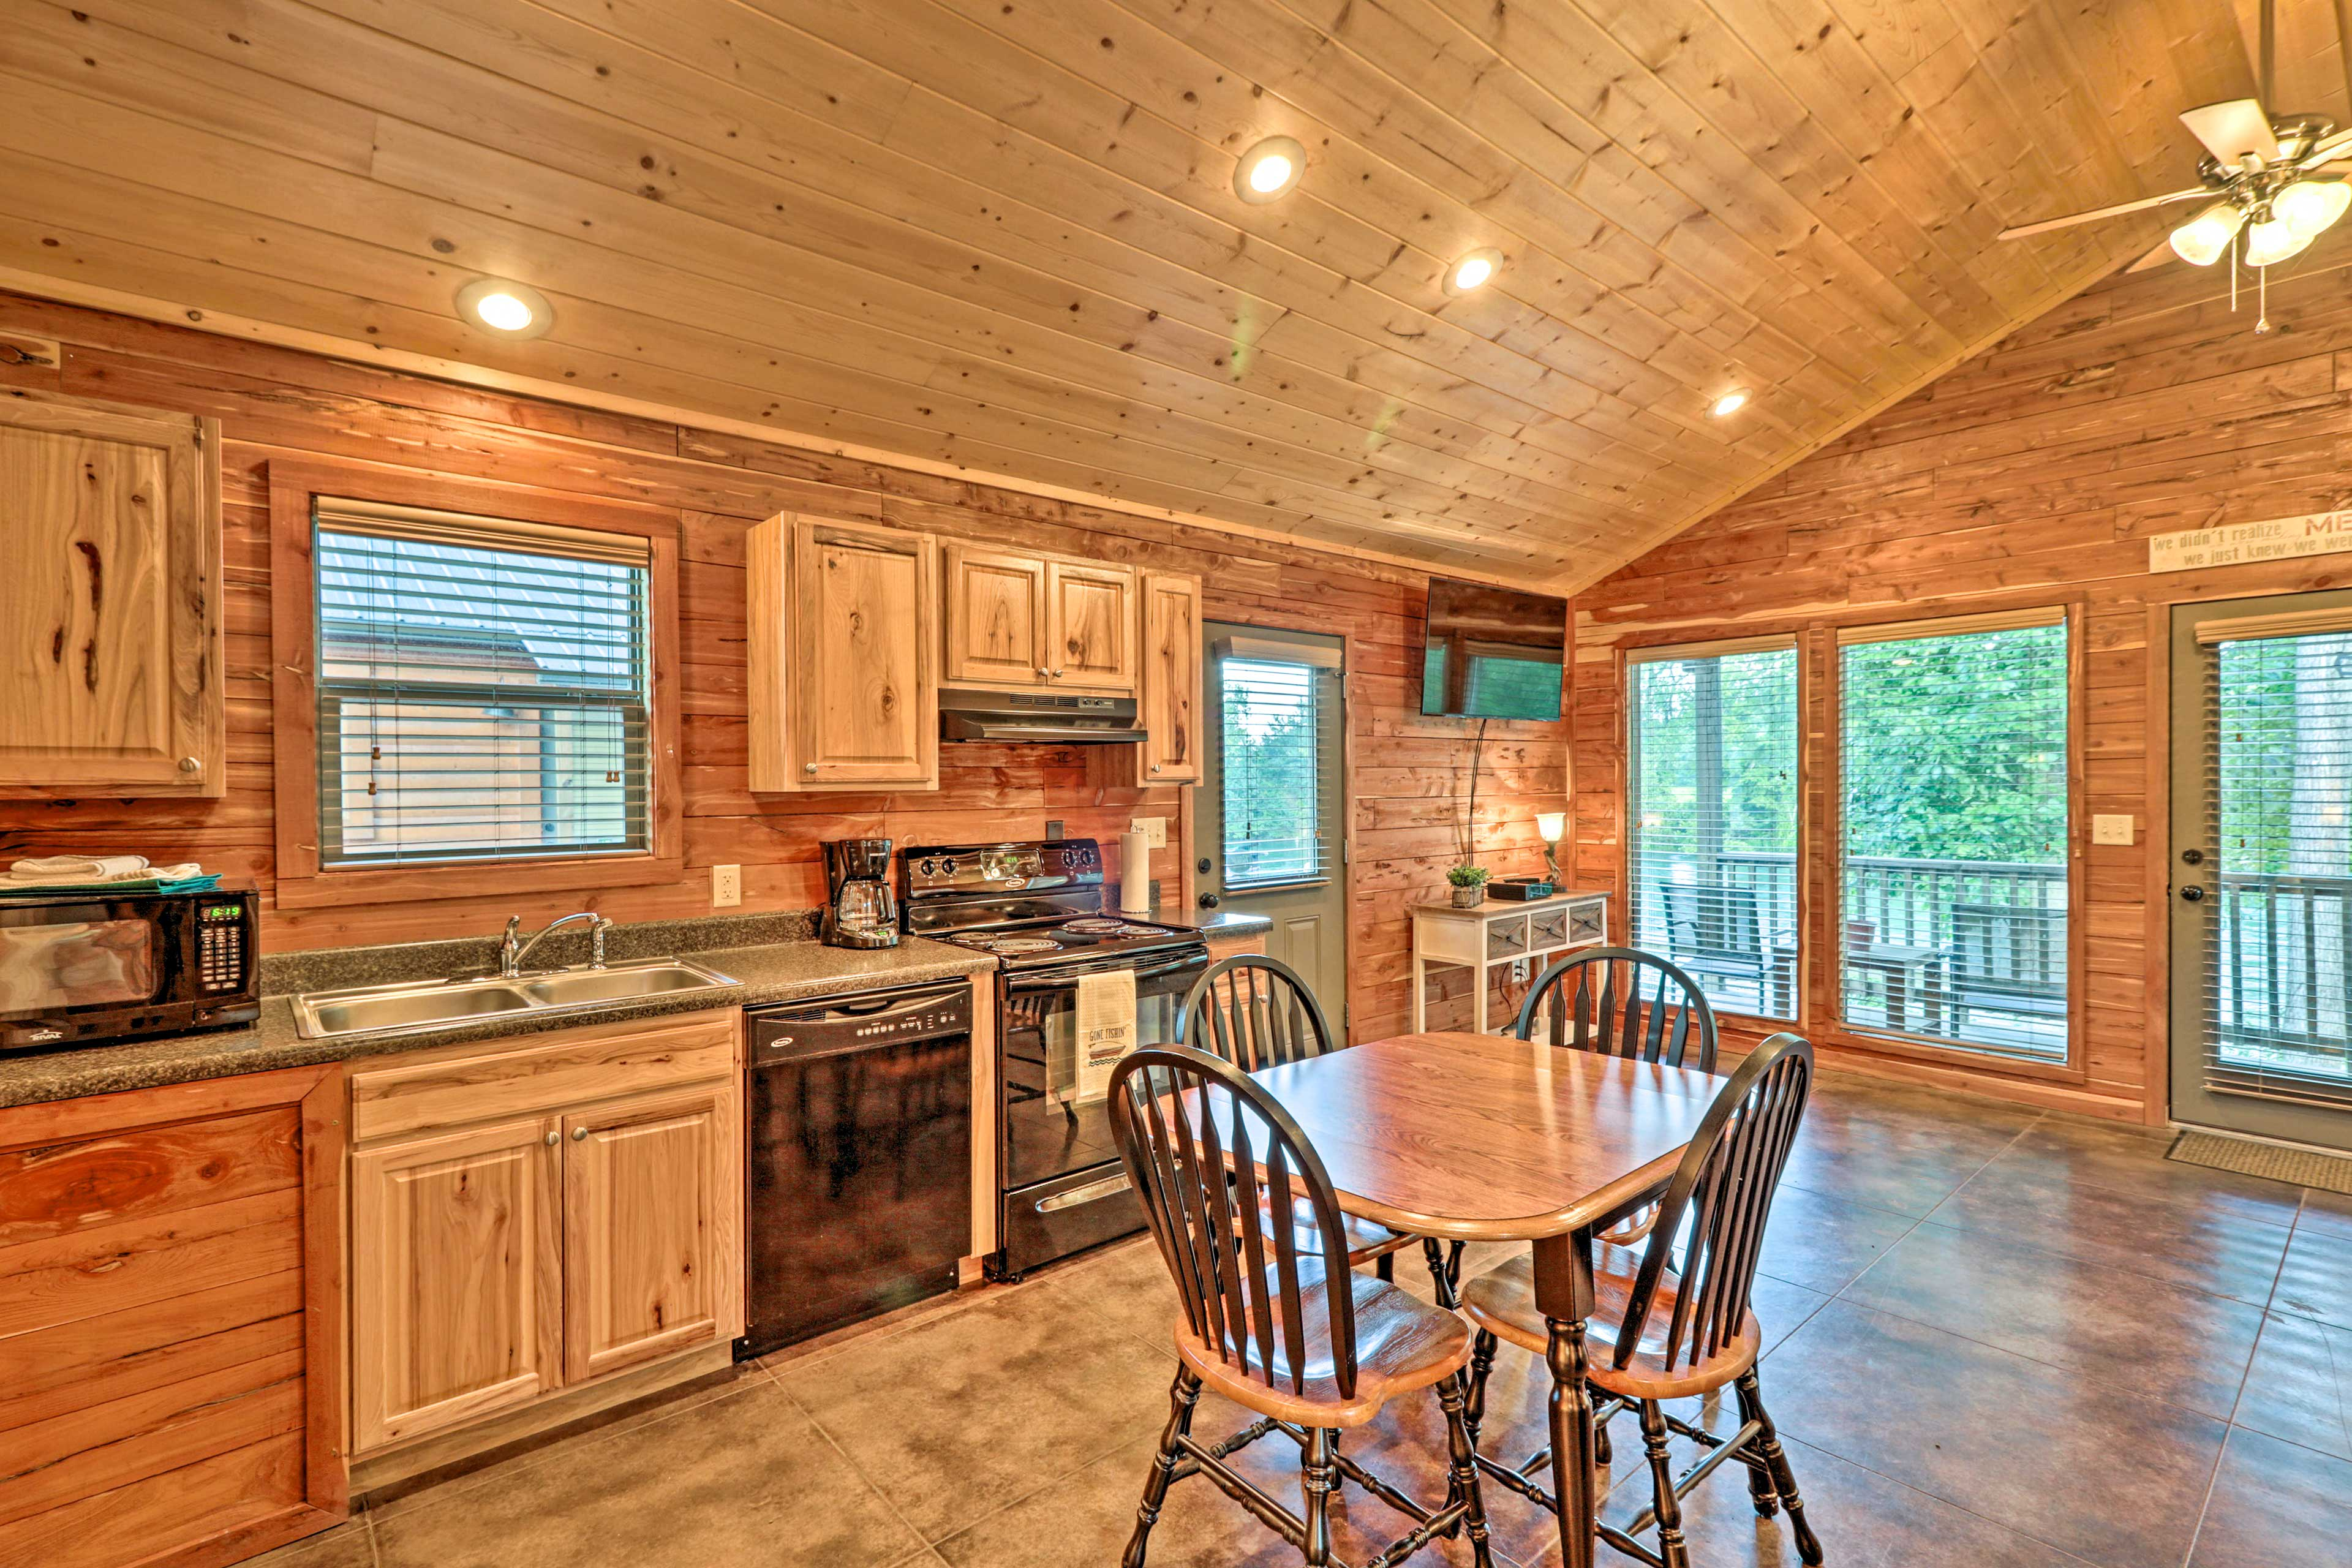 This riverfront cabin will make you feel right at home in Heber Springs!